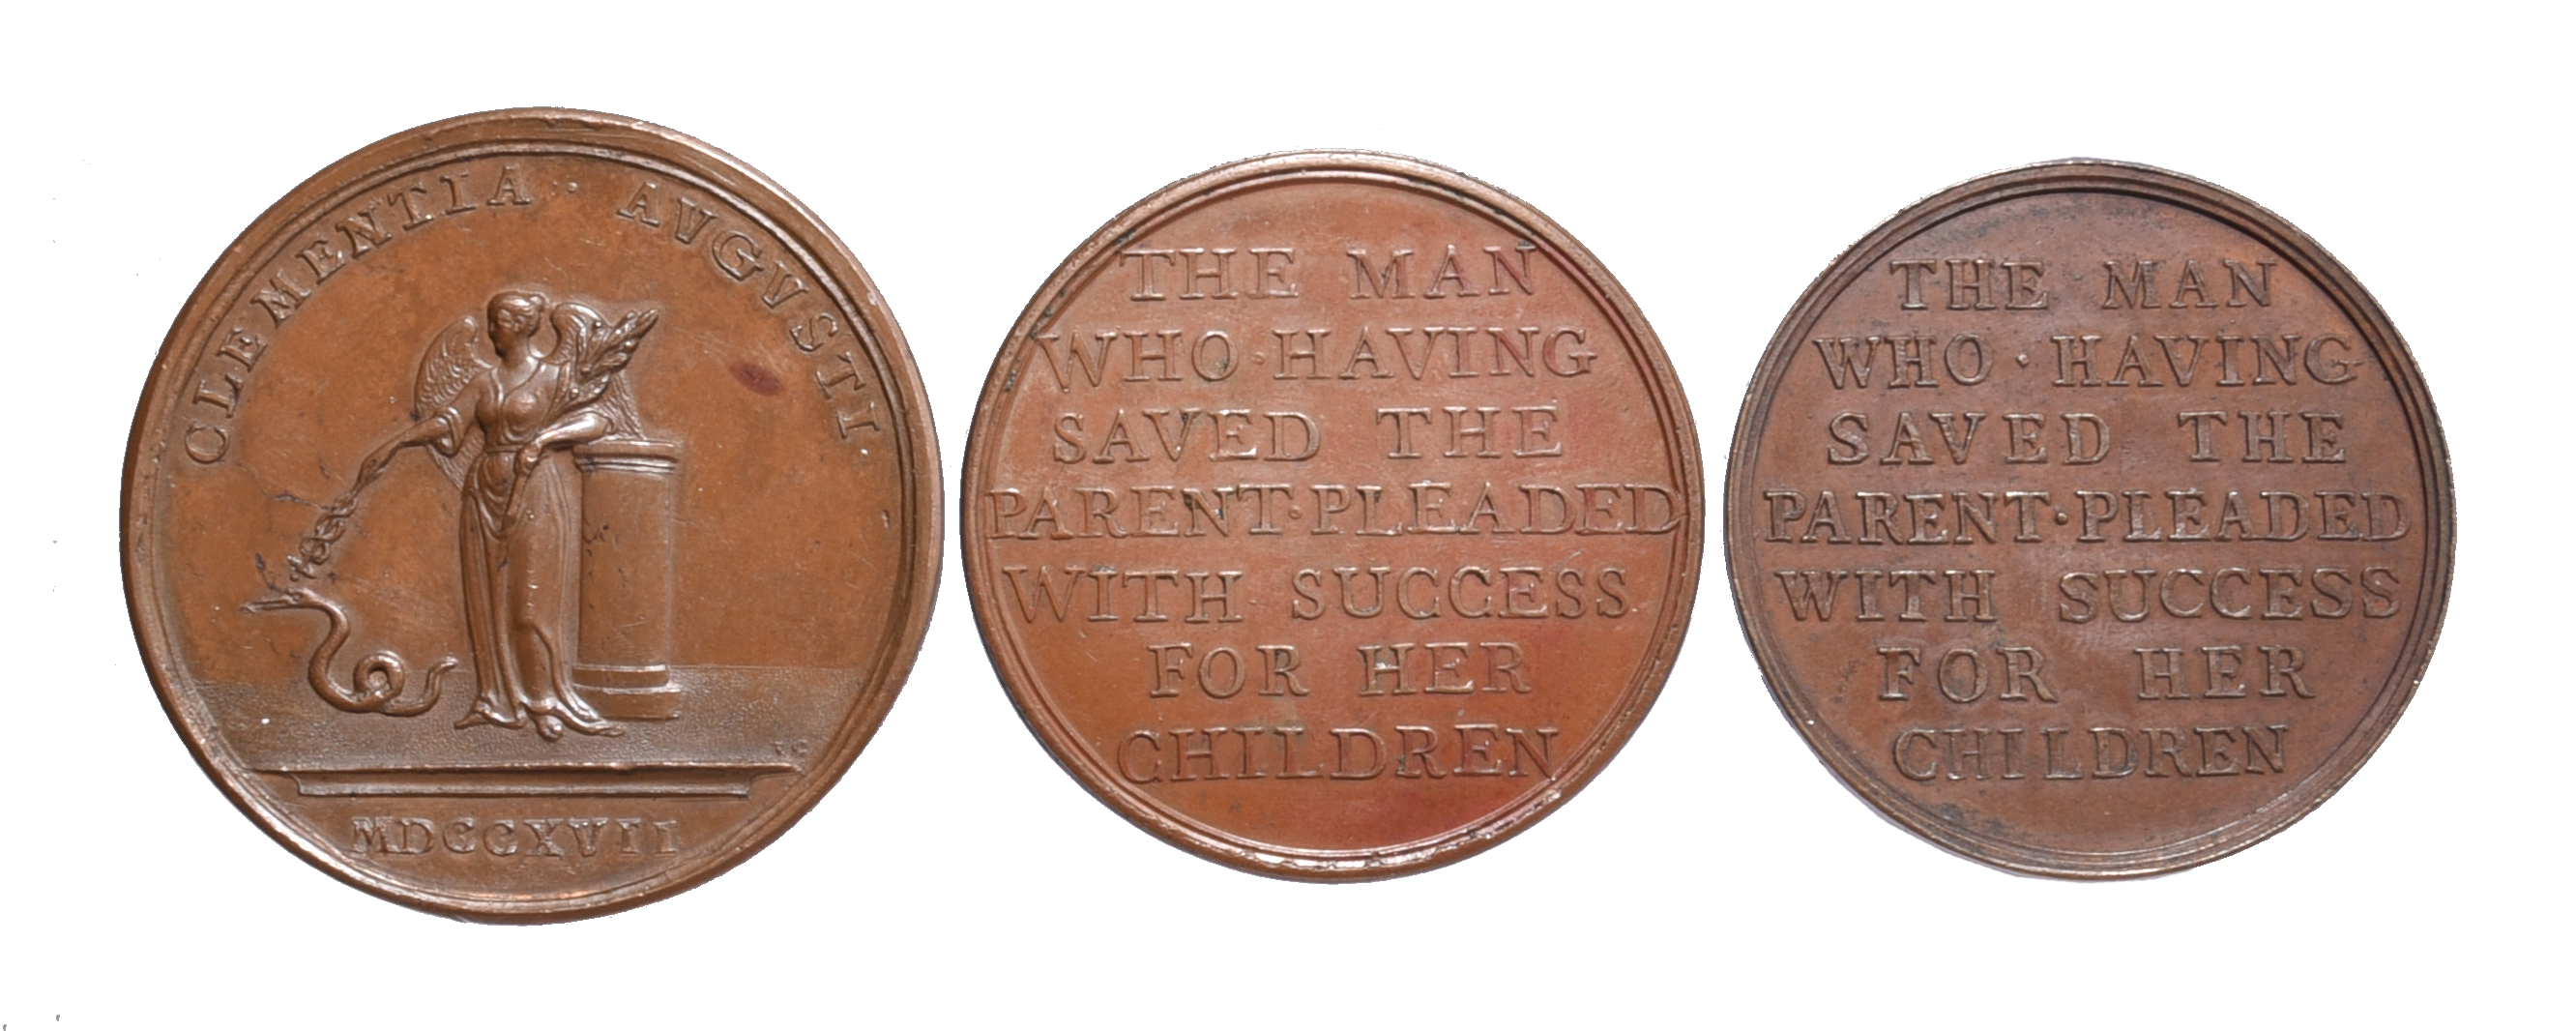 Great Britain: political commemorative medals (3): Act of Grace and Free Pardon 1717, AE, 45 mm, - Image 2 of 2